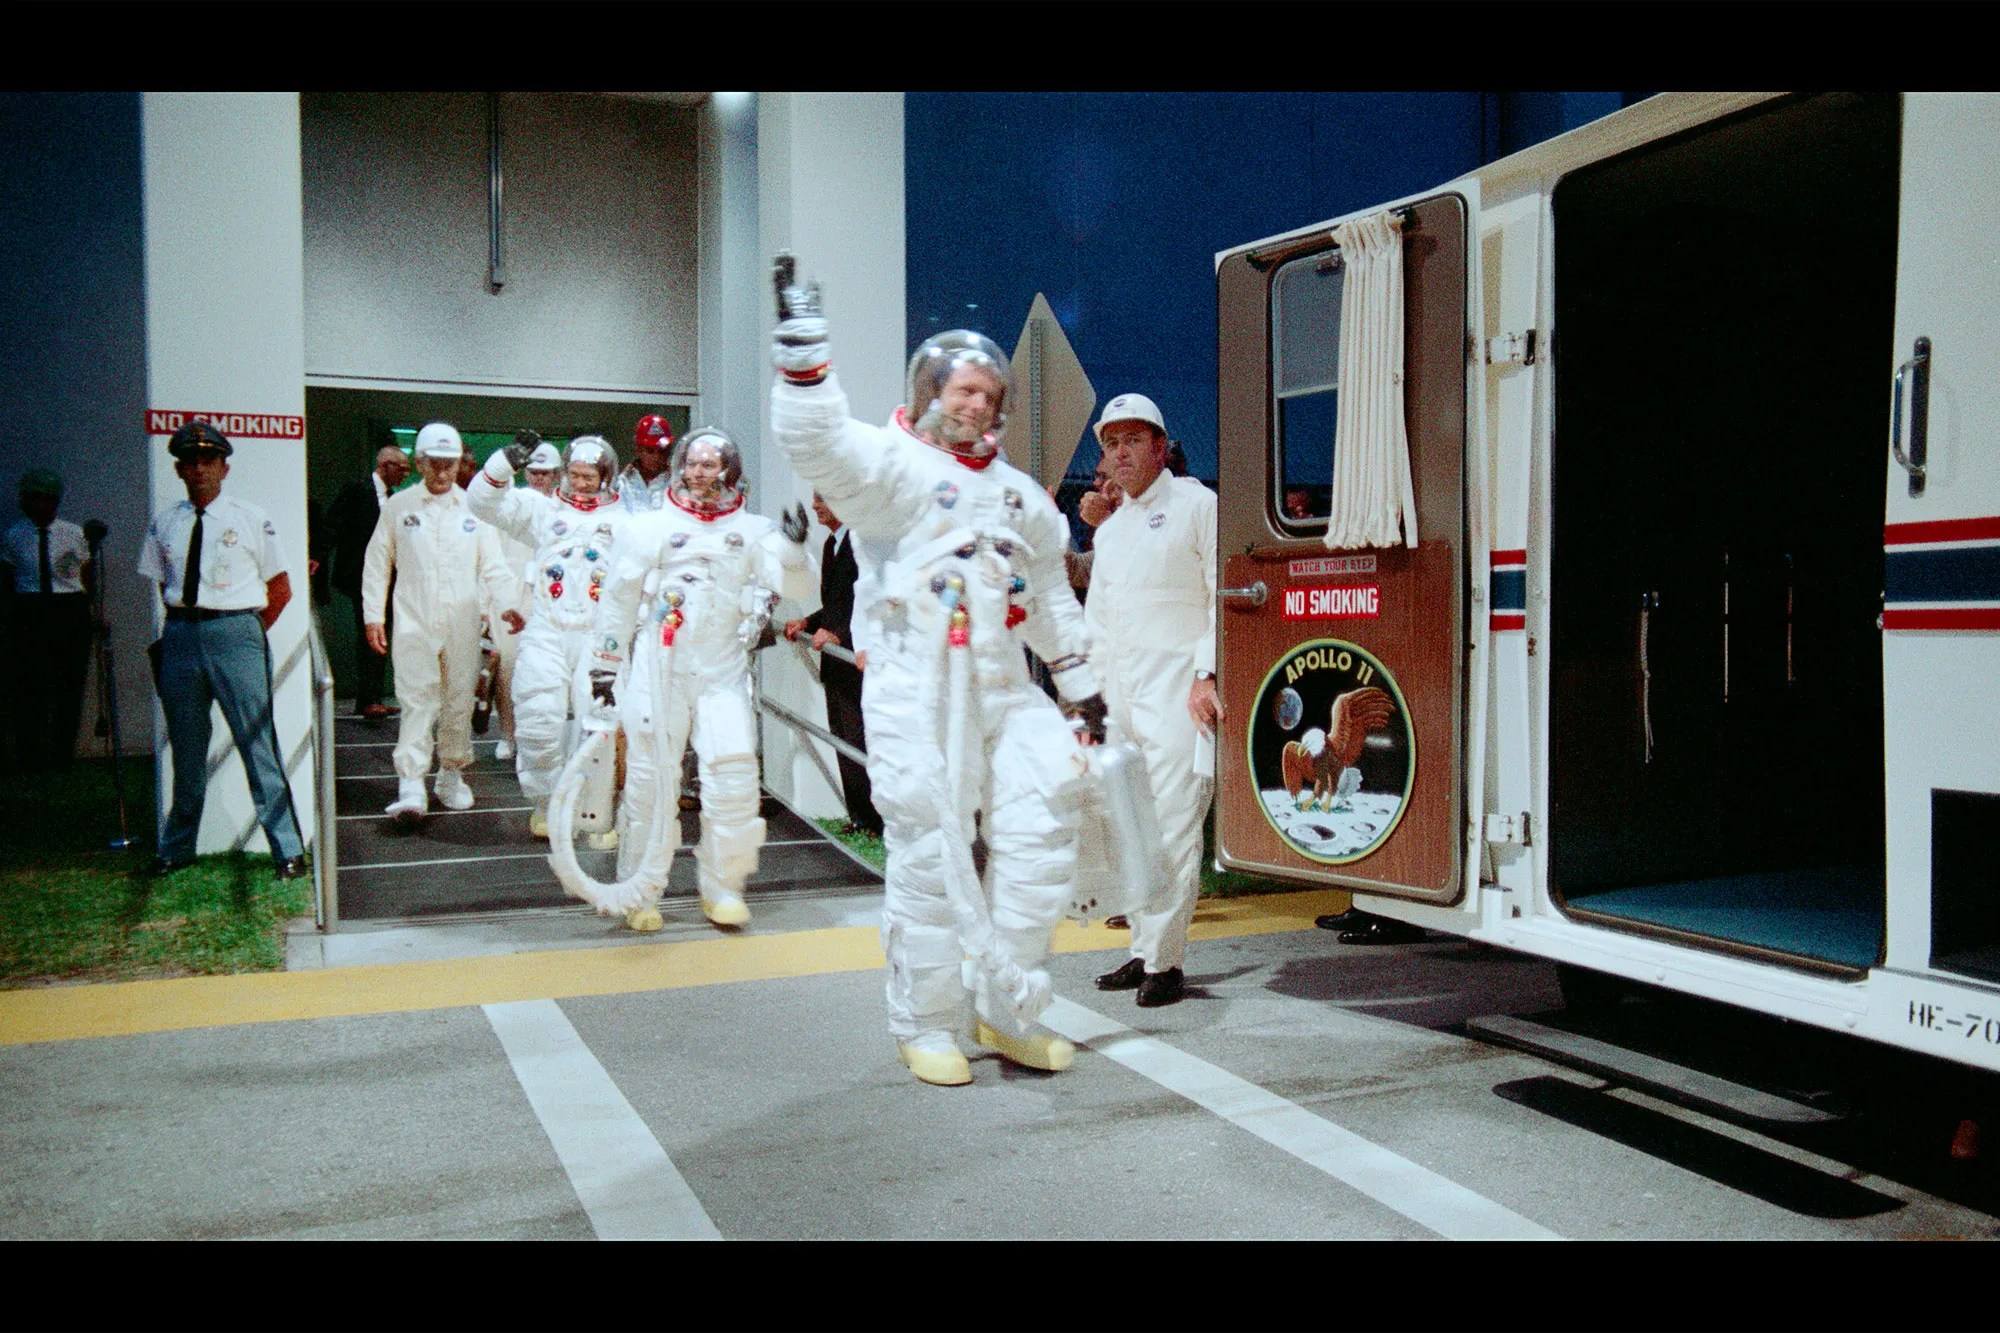 Badezimmer Set Apollo The Found Footage That Provides A Whole New Look At The Apollo 11